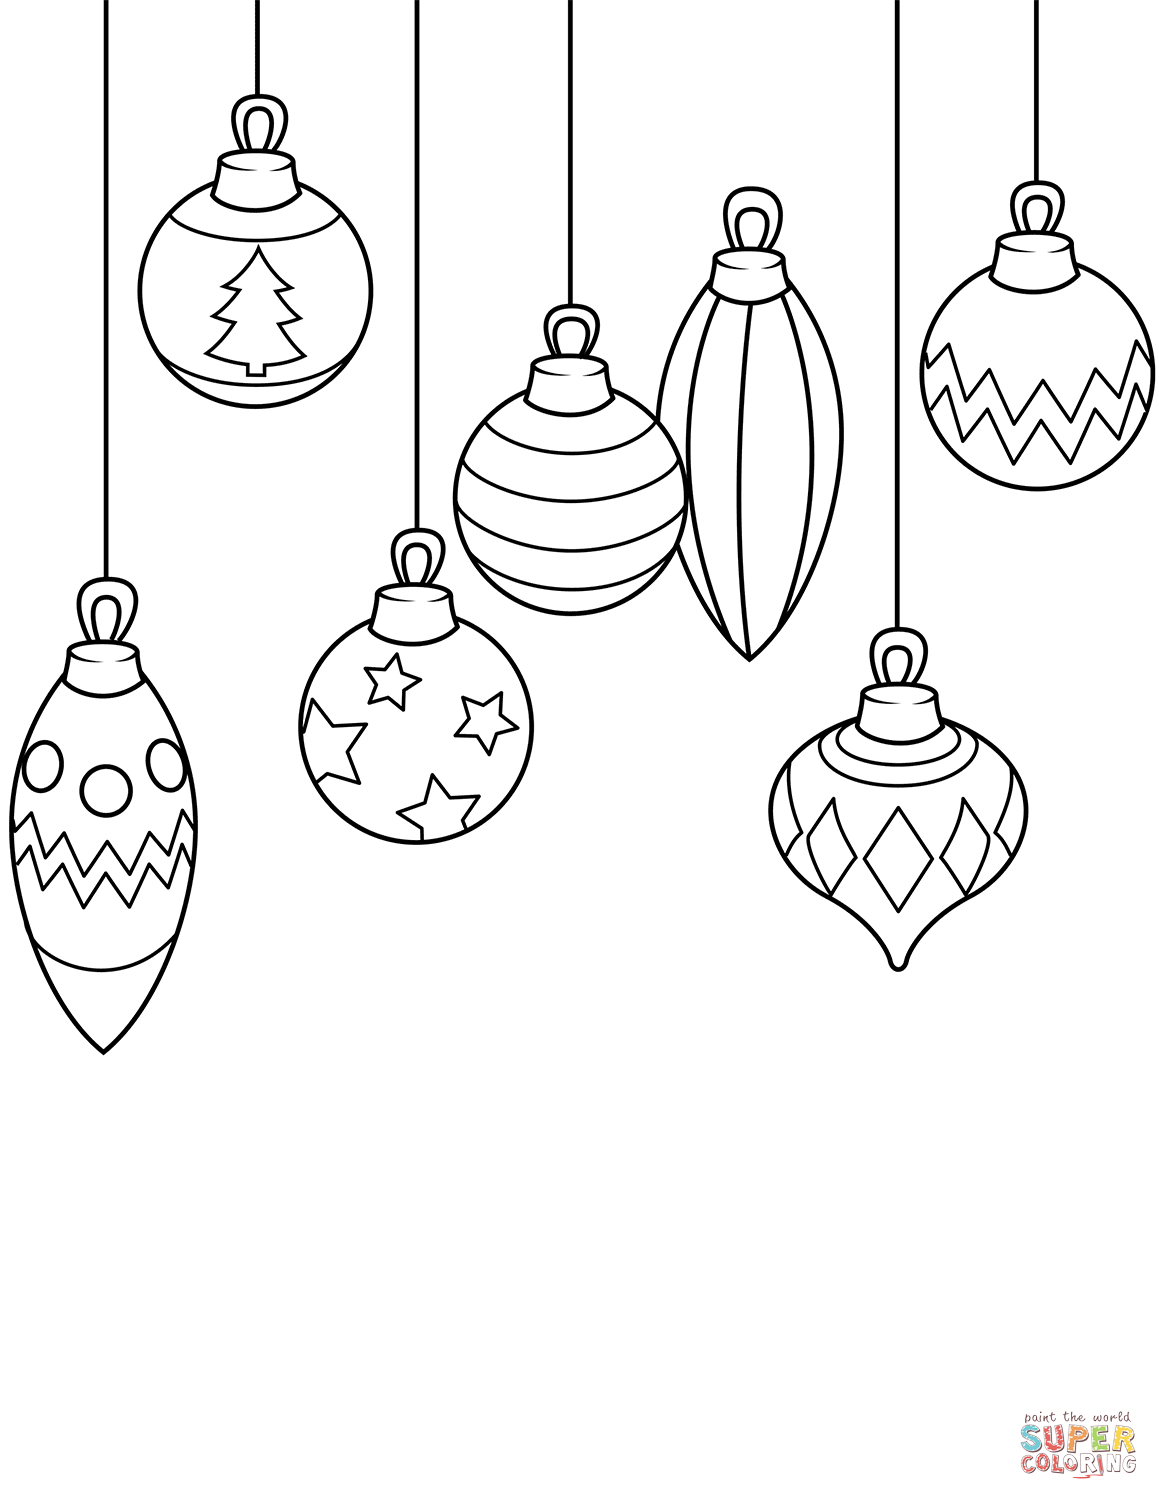 Christmas Ornaments Coloring Page | Free Printable Coloring Pages - Free Printable Ornaments To Color